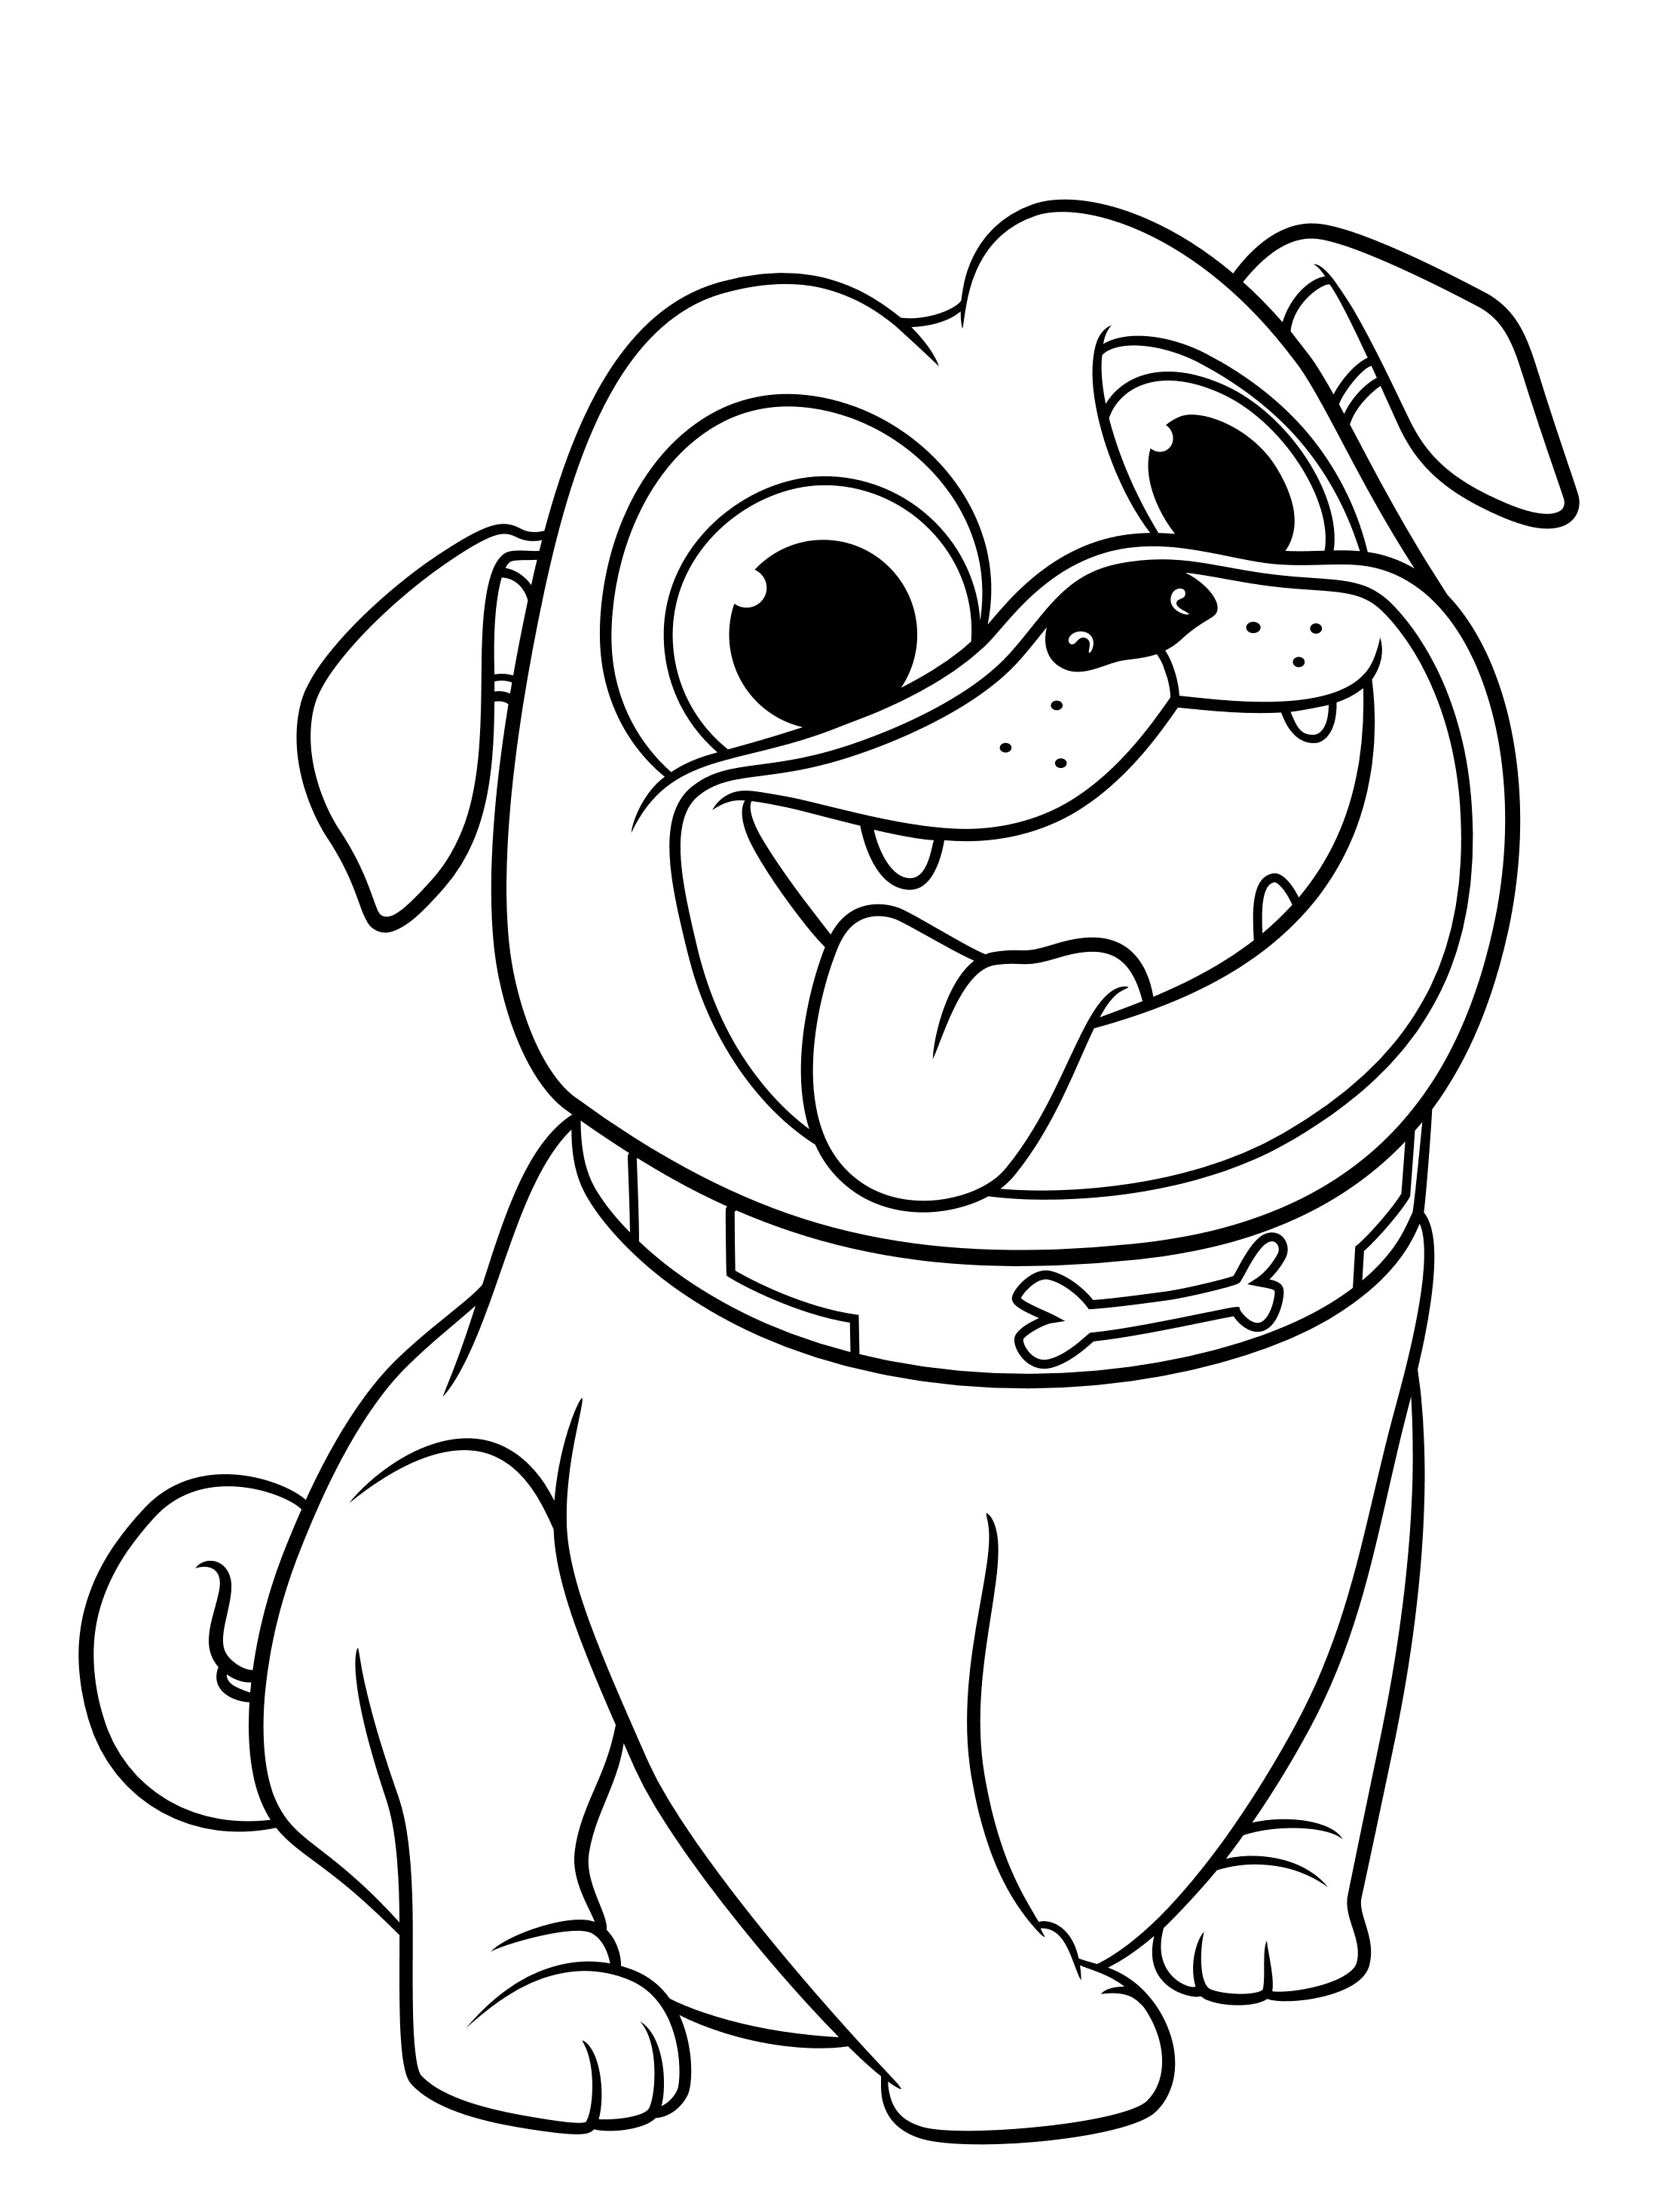 dog color sheets puppy dog pals coloring pages to download and print for free dog color sheets